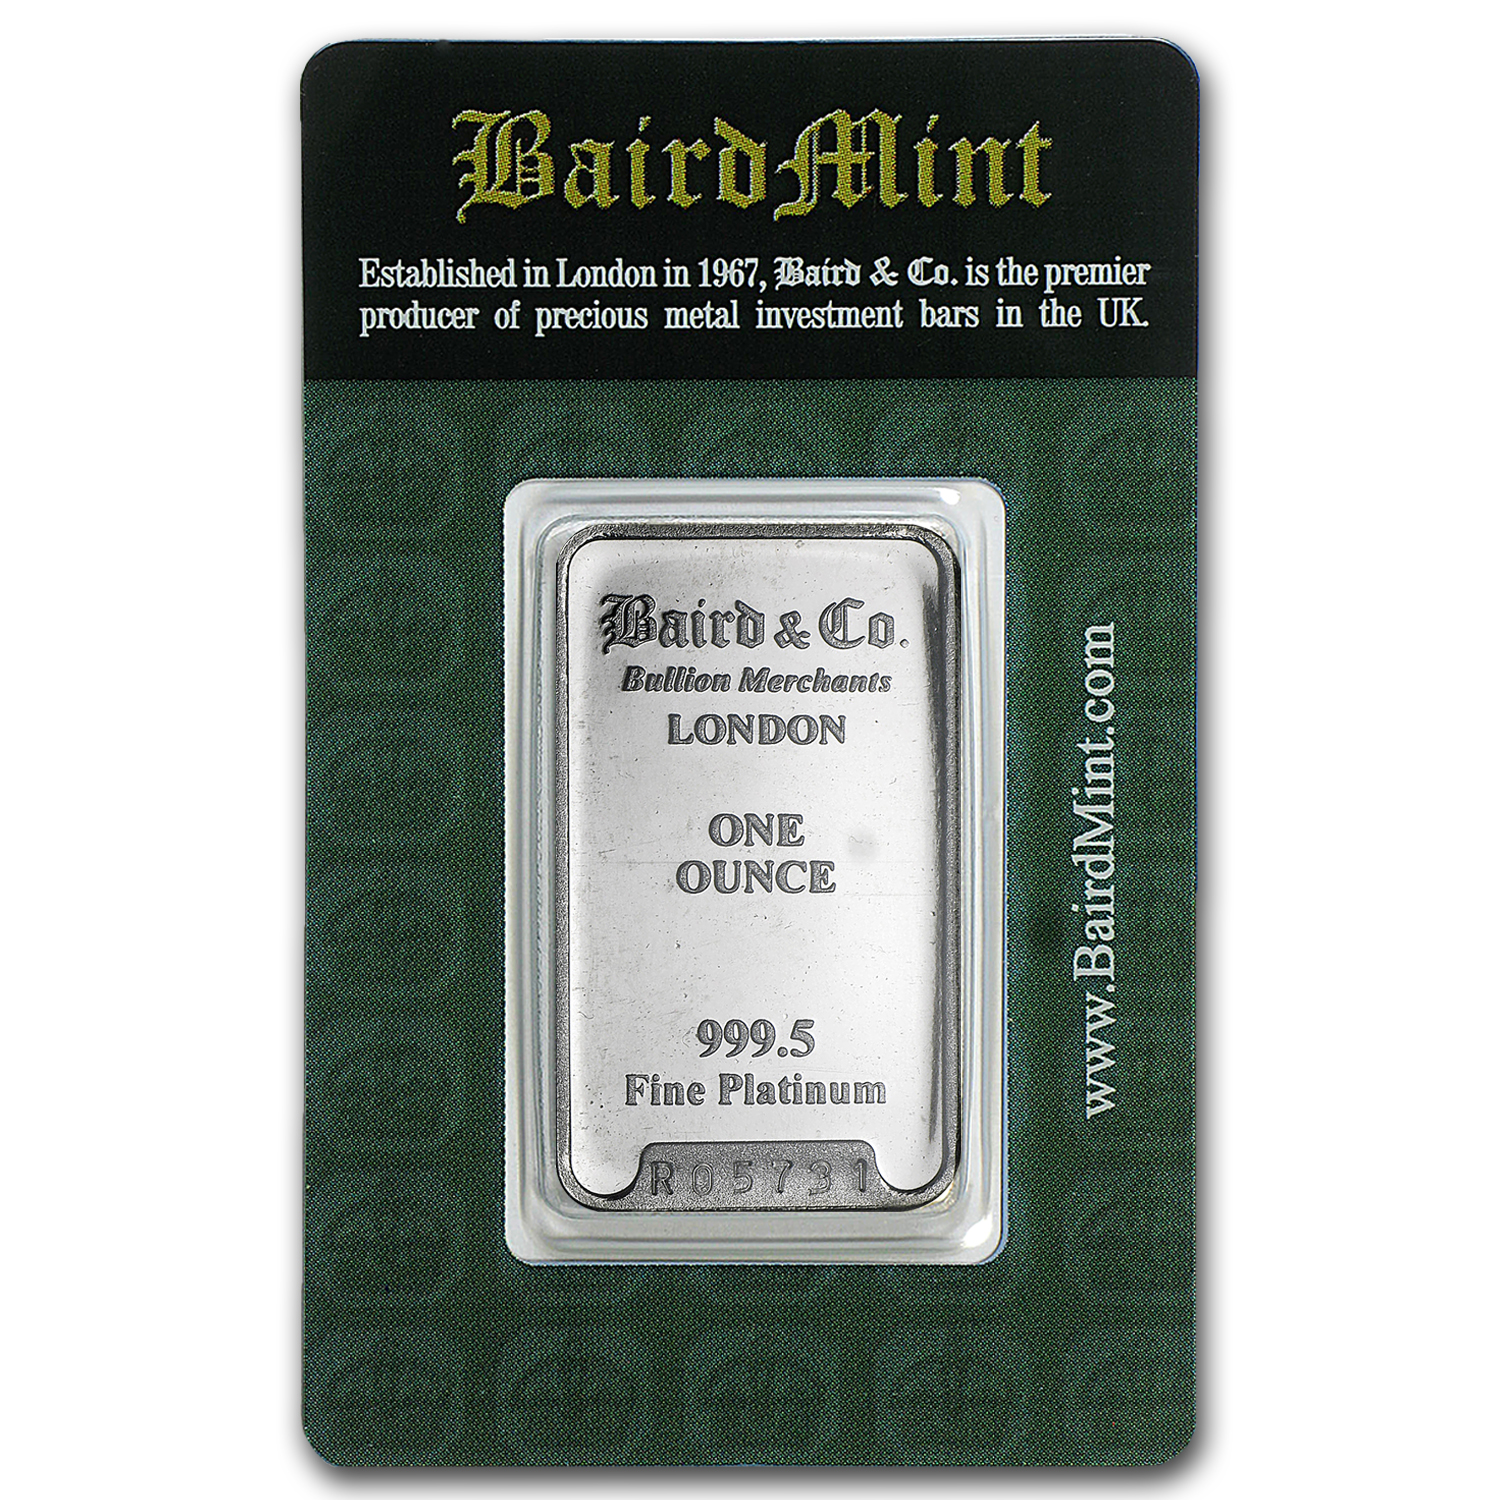 1 oz Platinum Bar - Baird & Co. (In Assay)